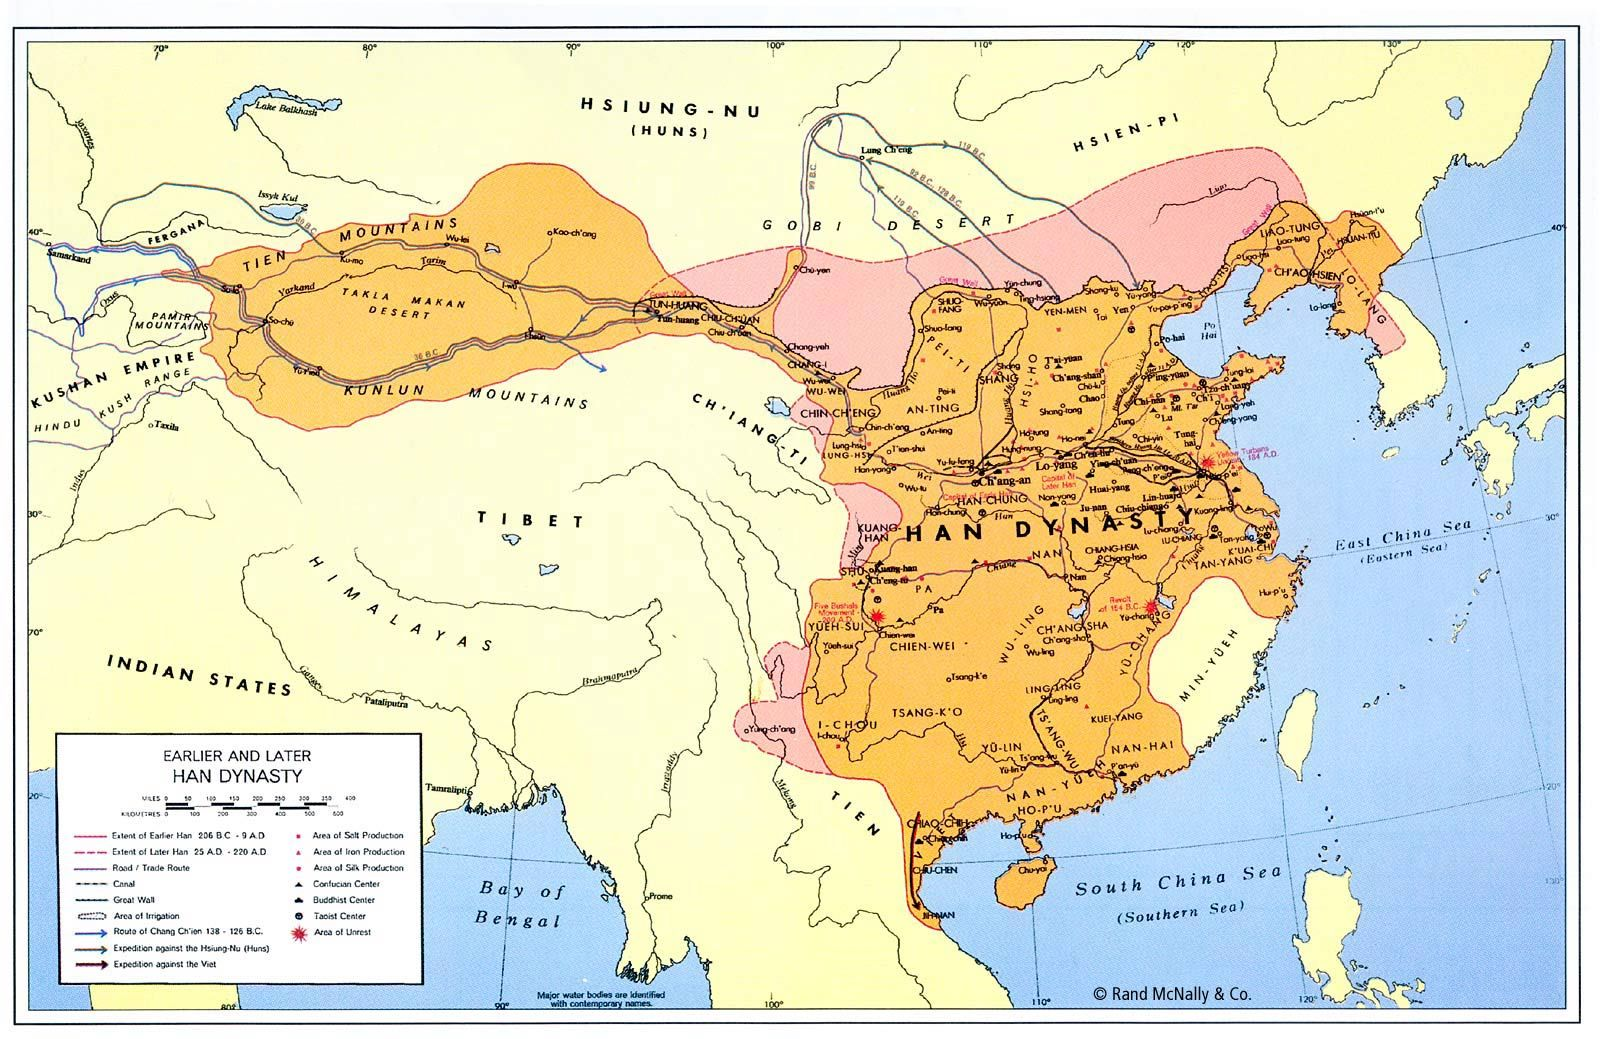 That History of asian civilization